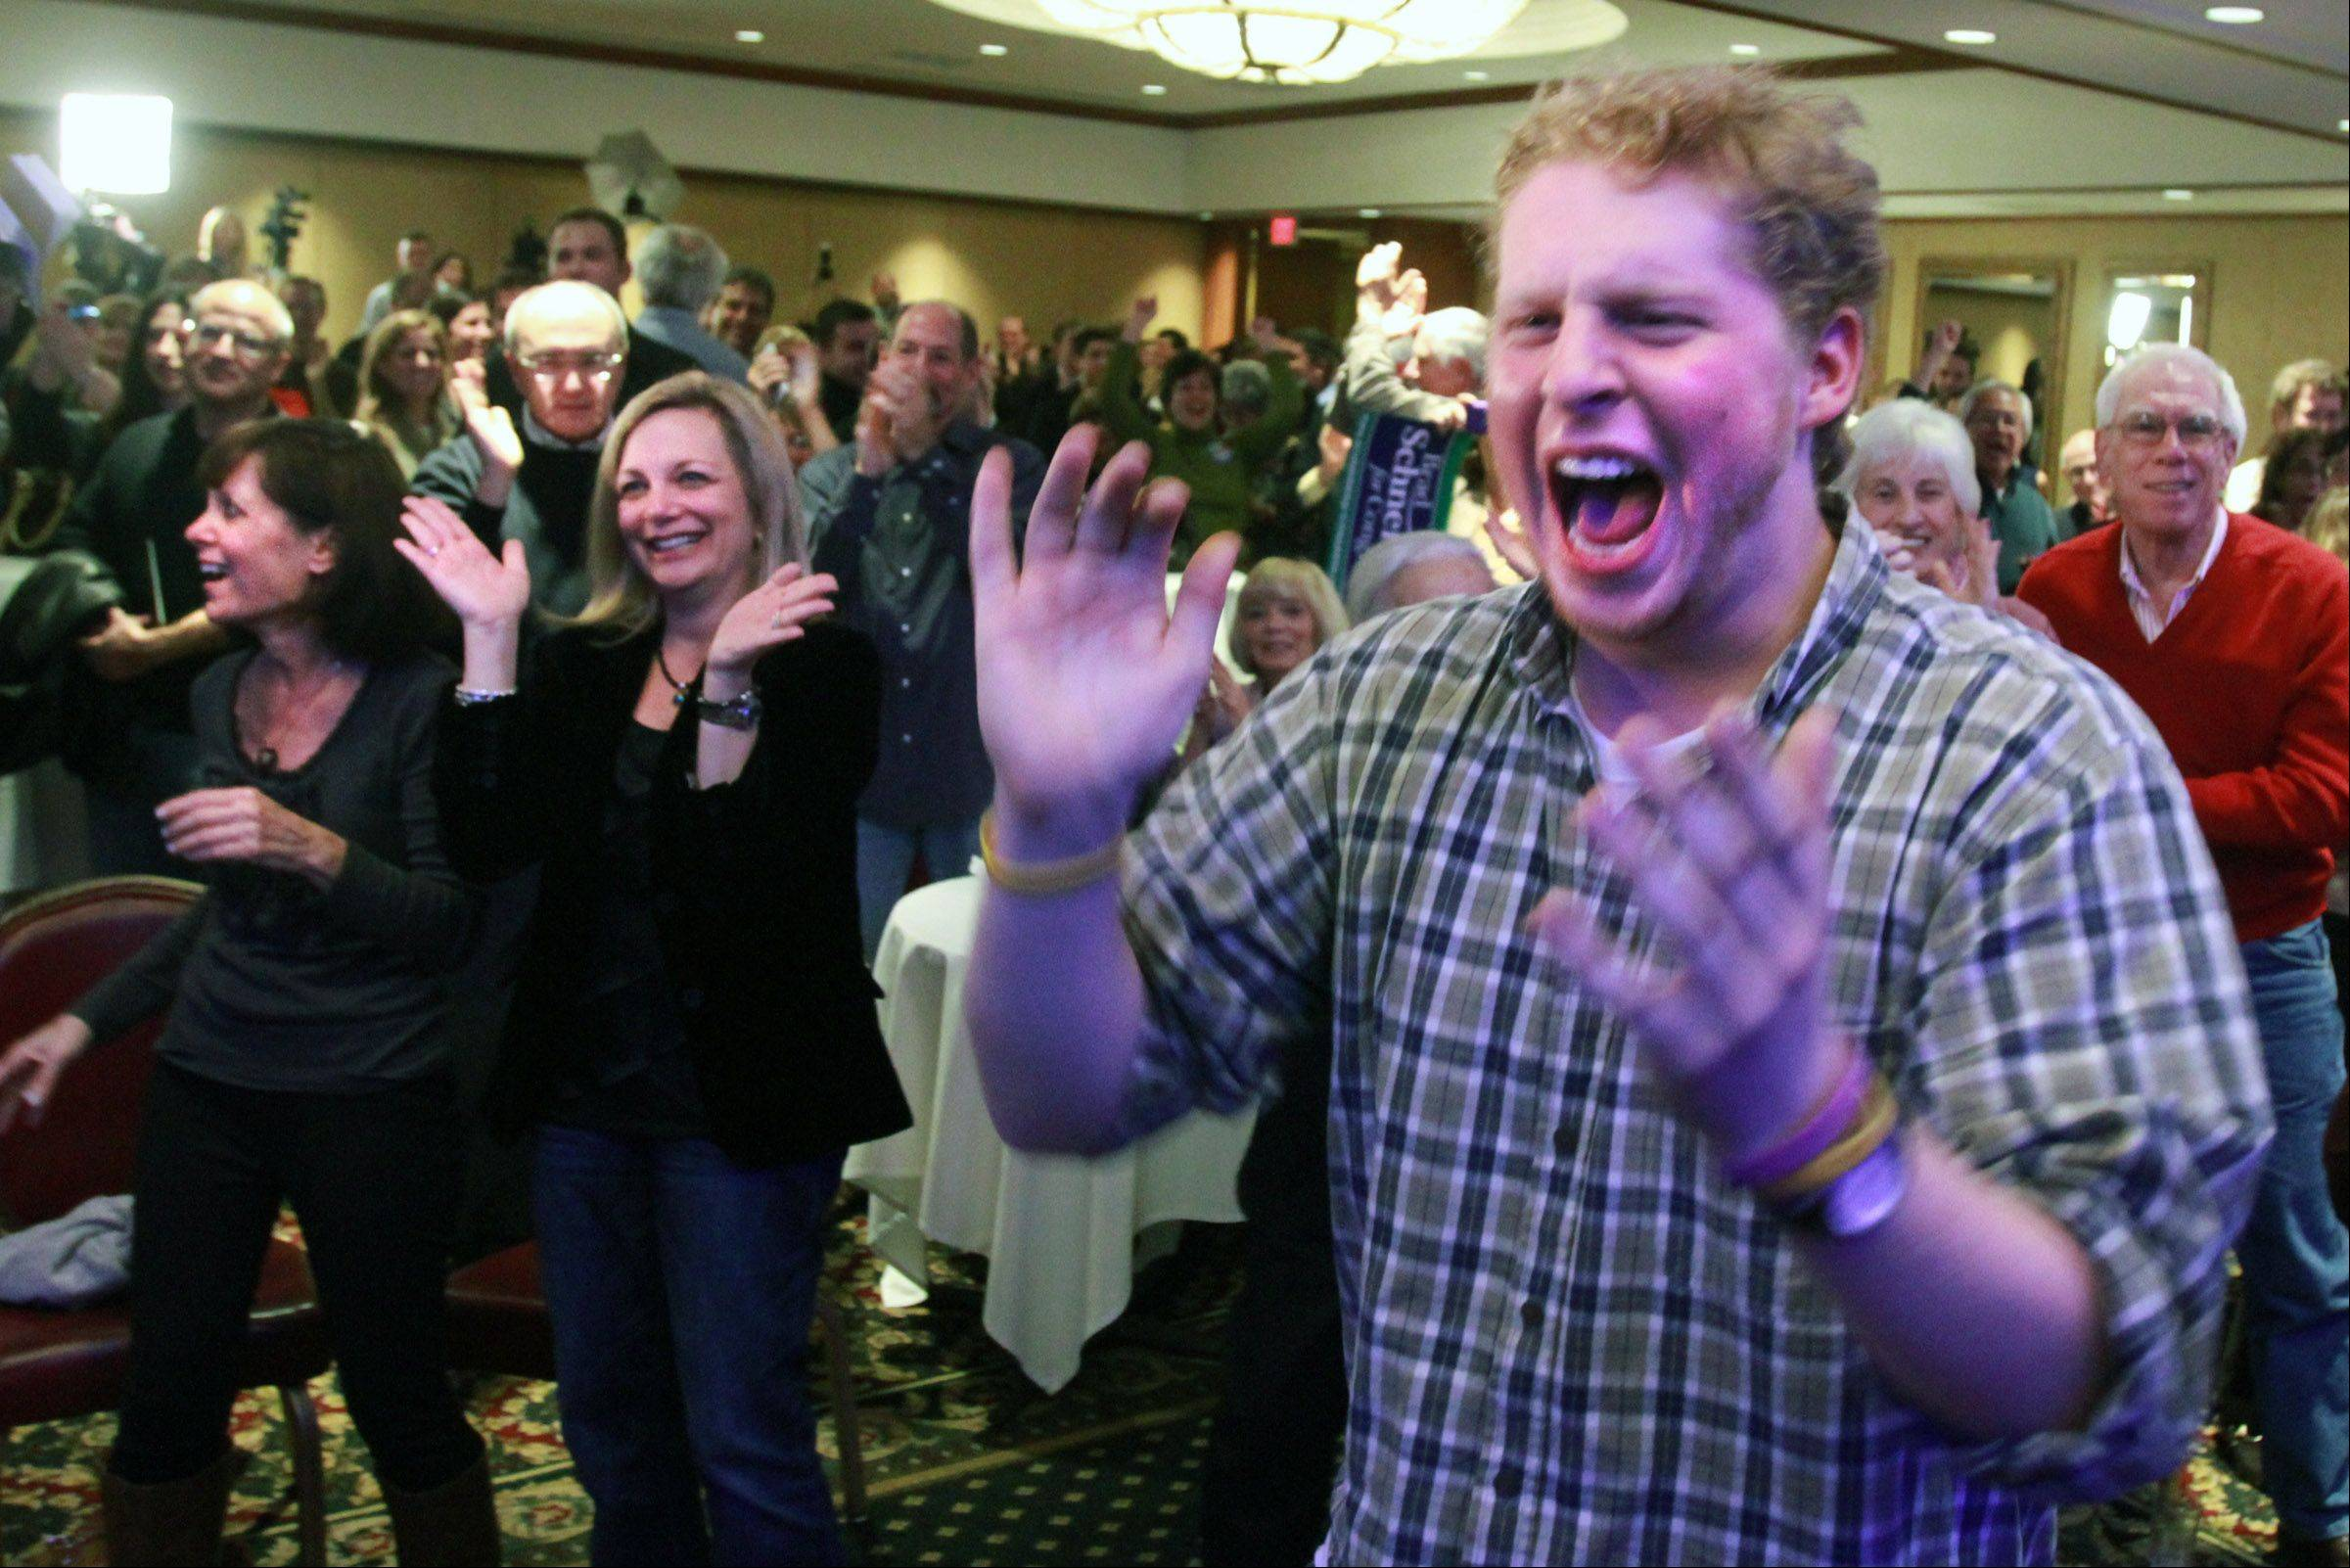 Nat Brautigam of Vernon Hills reacts during a Brad Schneider Northbrook election night party, as CNN announces Obama has won the Presidential election.